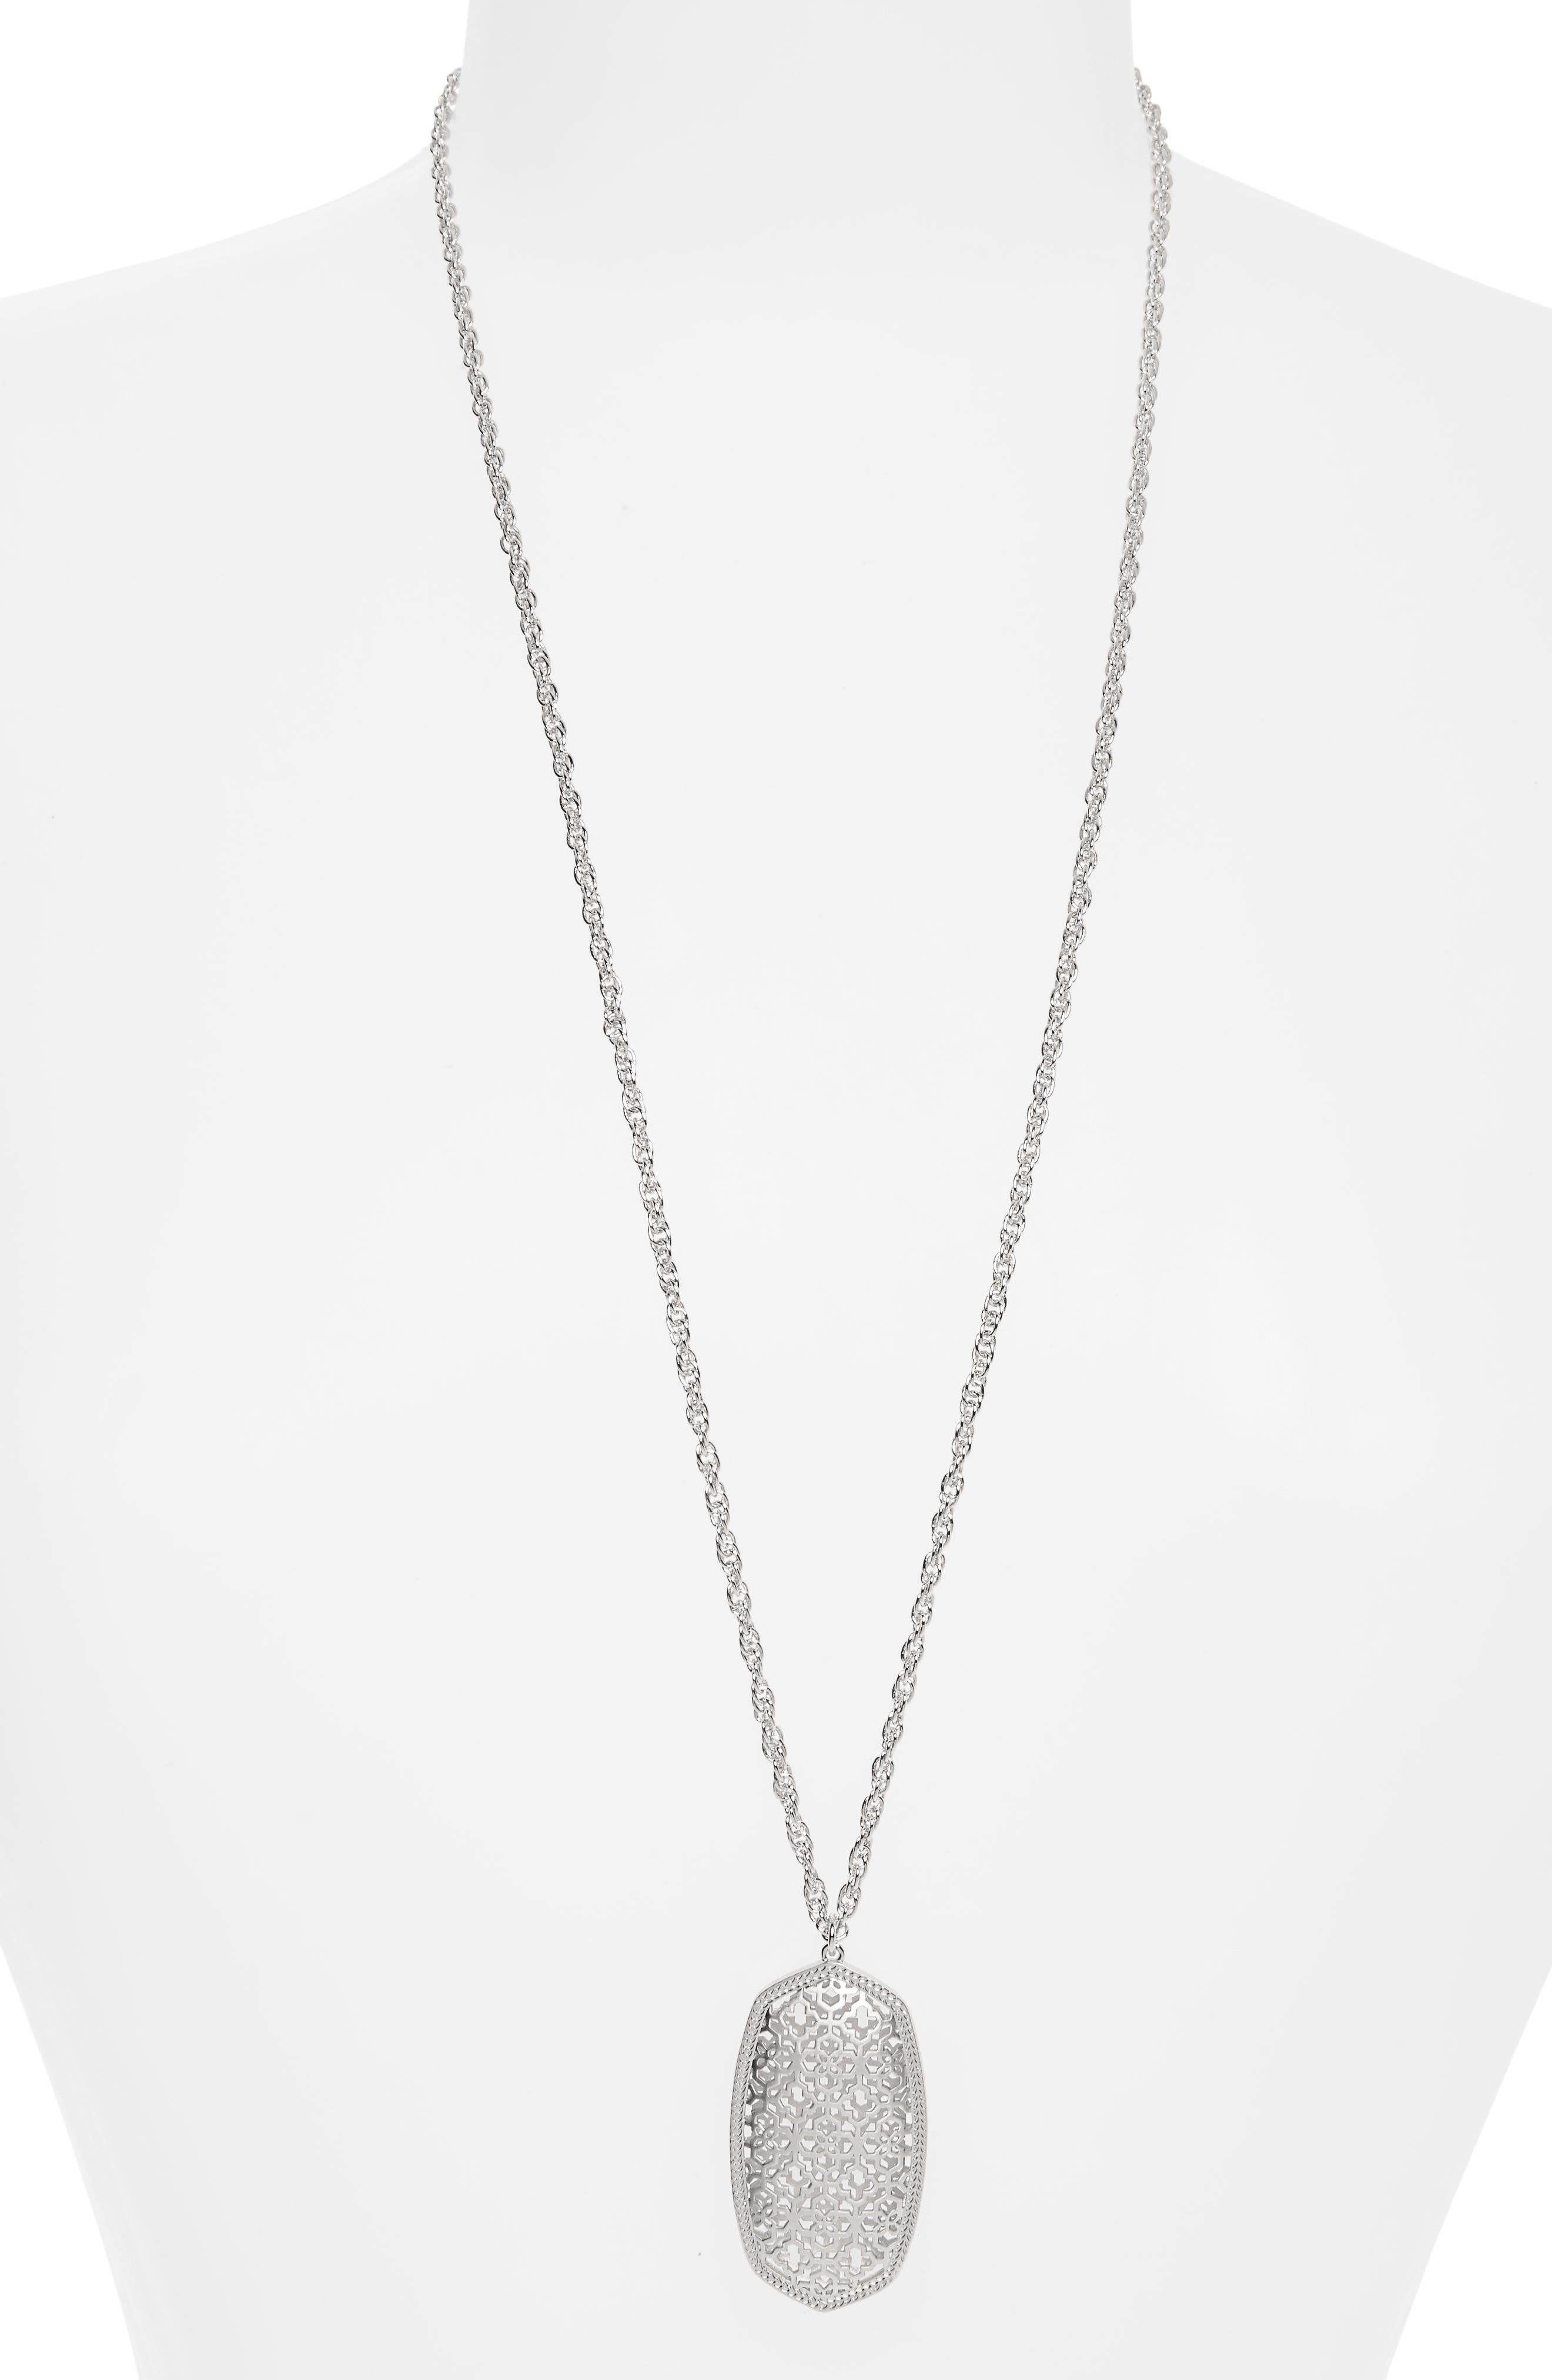 KENDRA SCOTT Rae Long Filigree Pendant Necklace, Main, color, SILVER FILIGREE